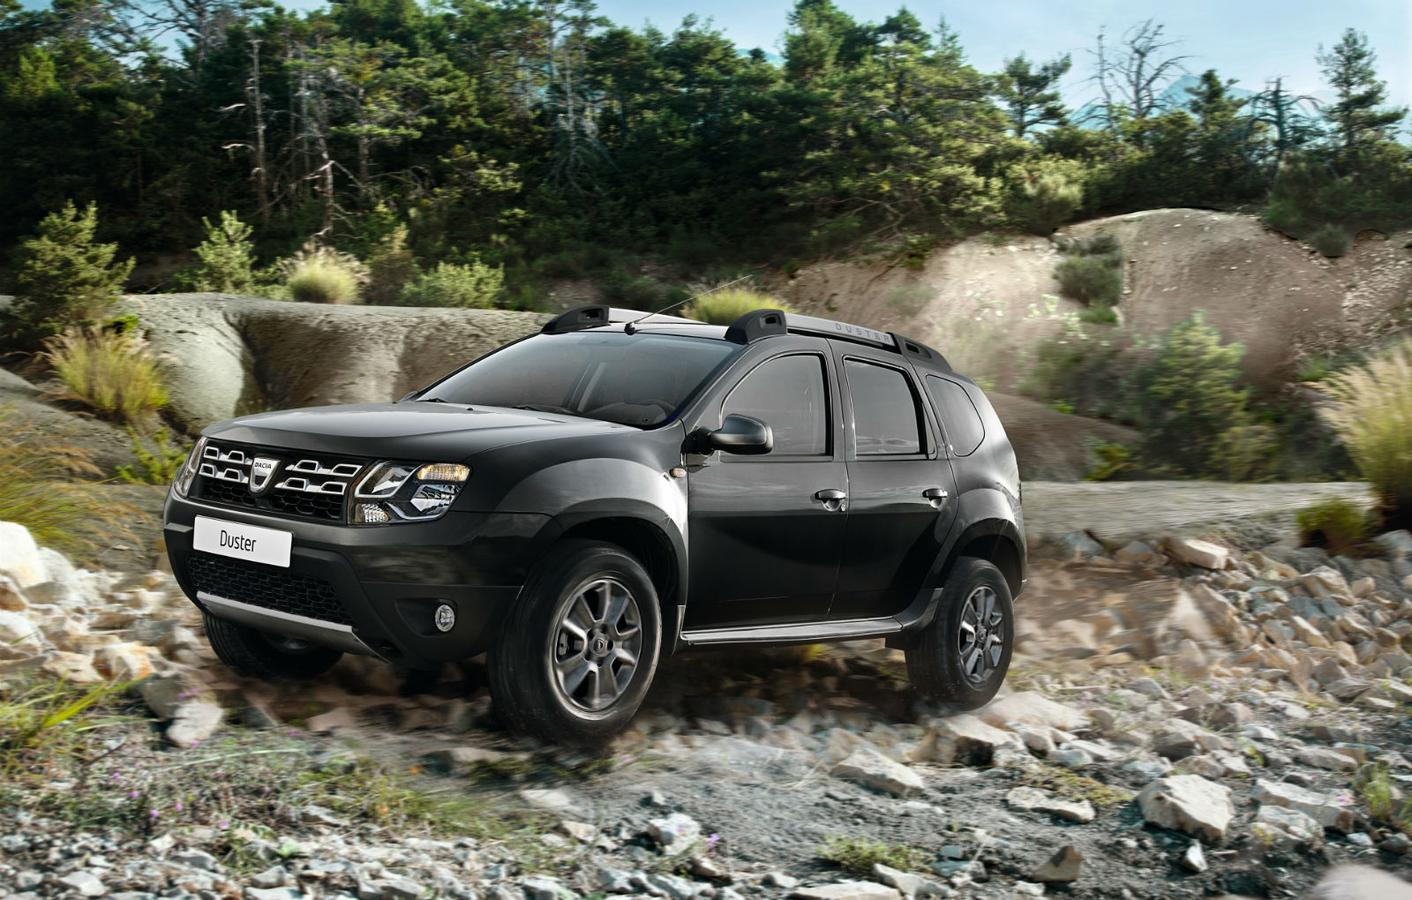 dacia duster 1 2 tce 4x4 3 auto bild. Black Bedroom Furniture Sets. Home Design Ideas